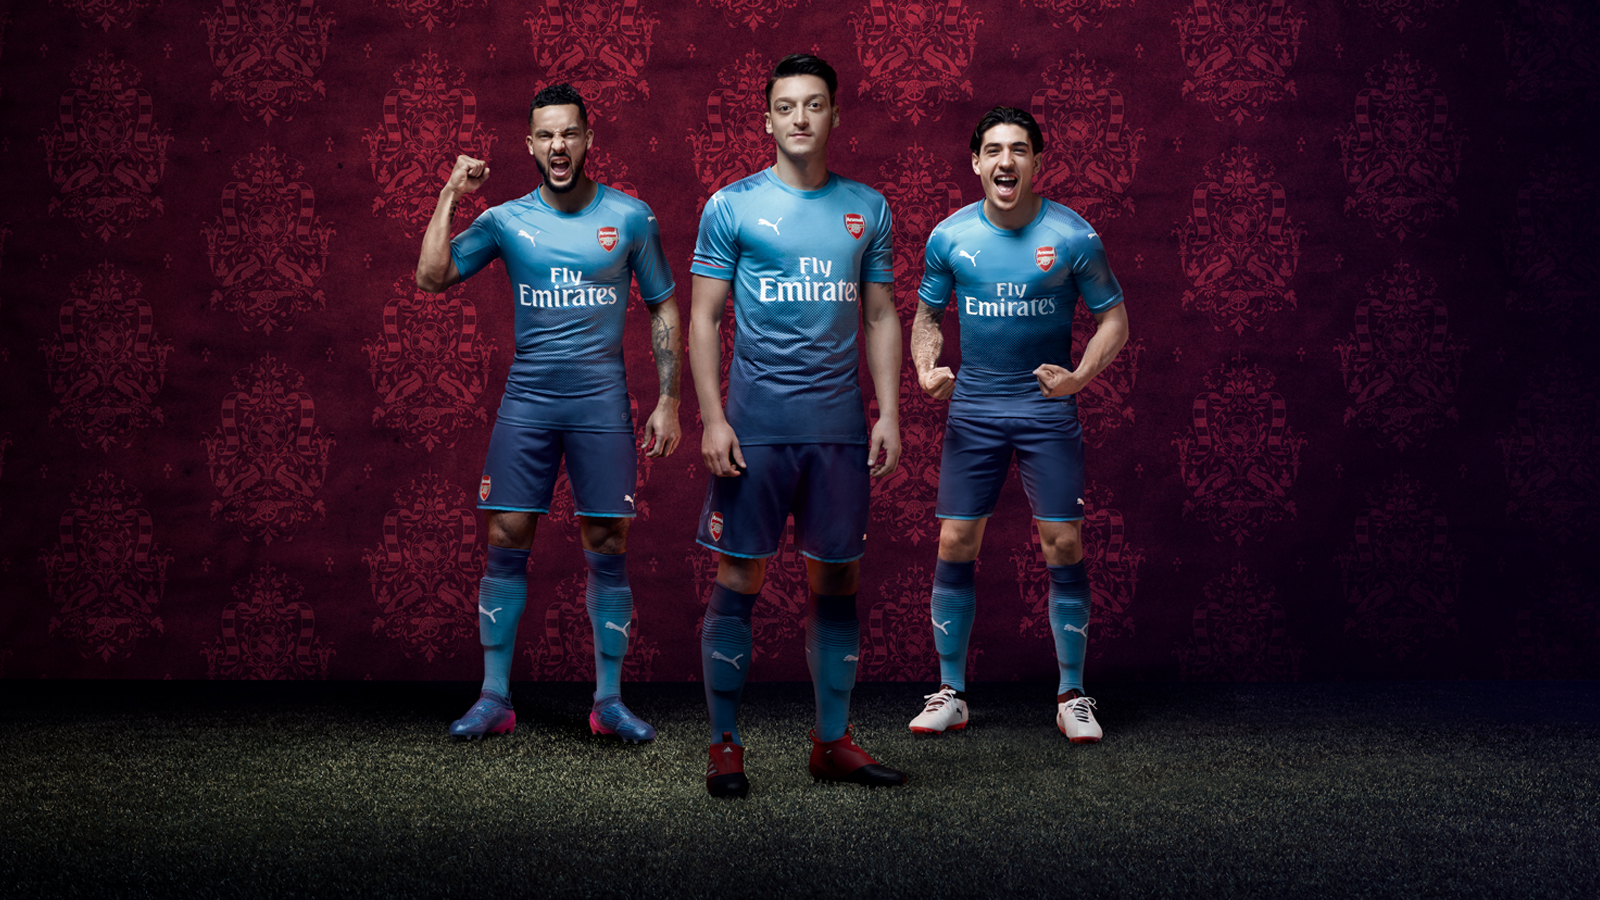 2017/18 away kit now on sale | The Club | News | Arsenal.com